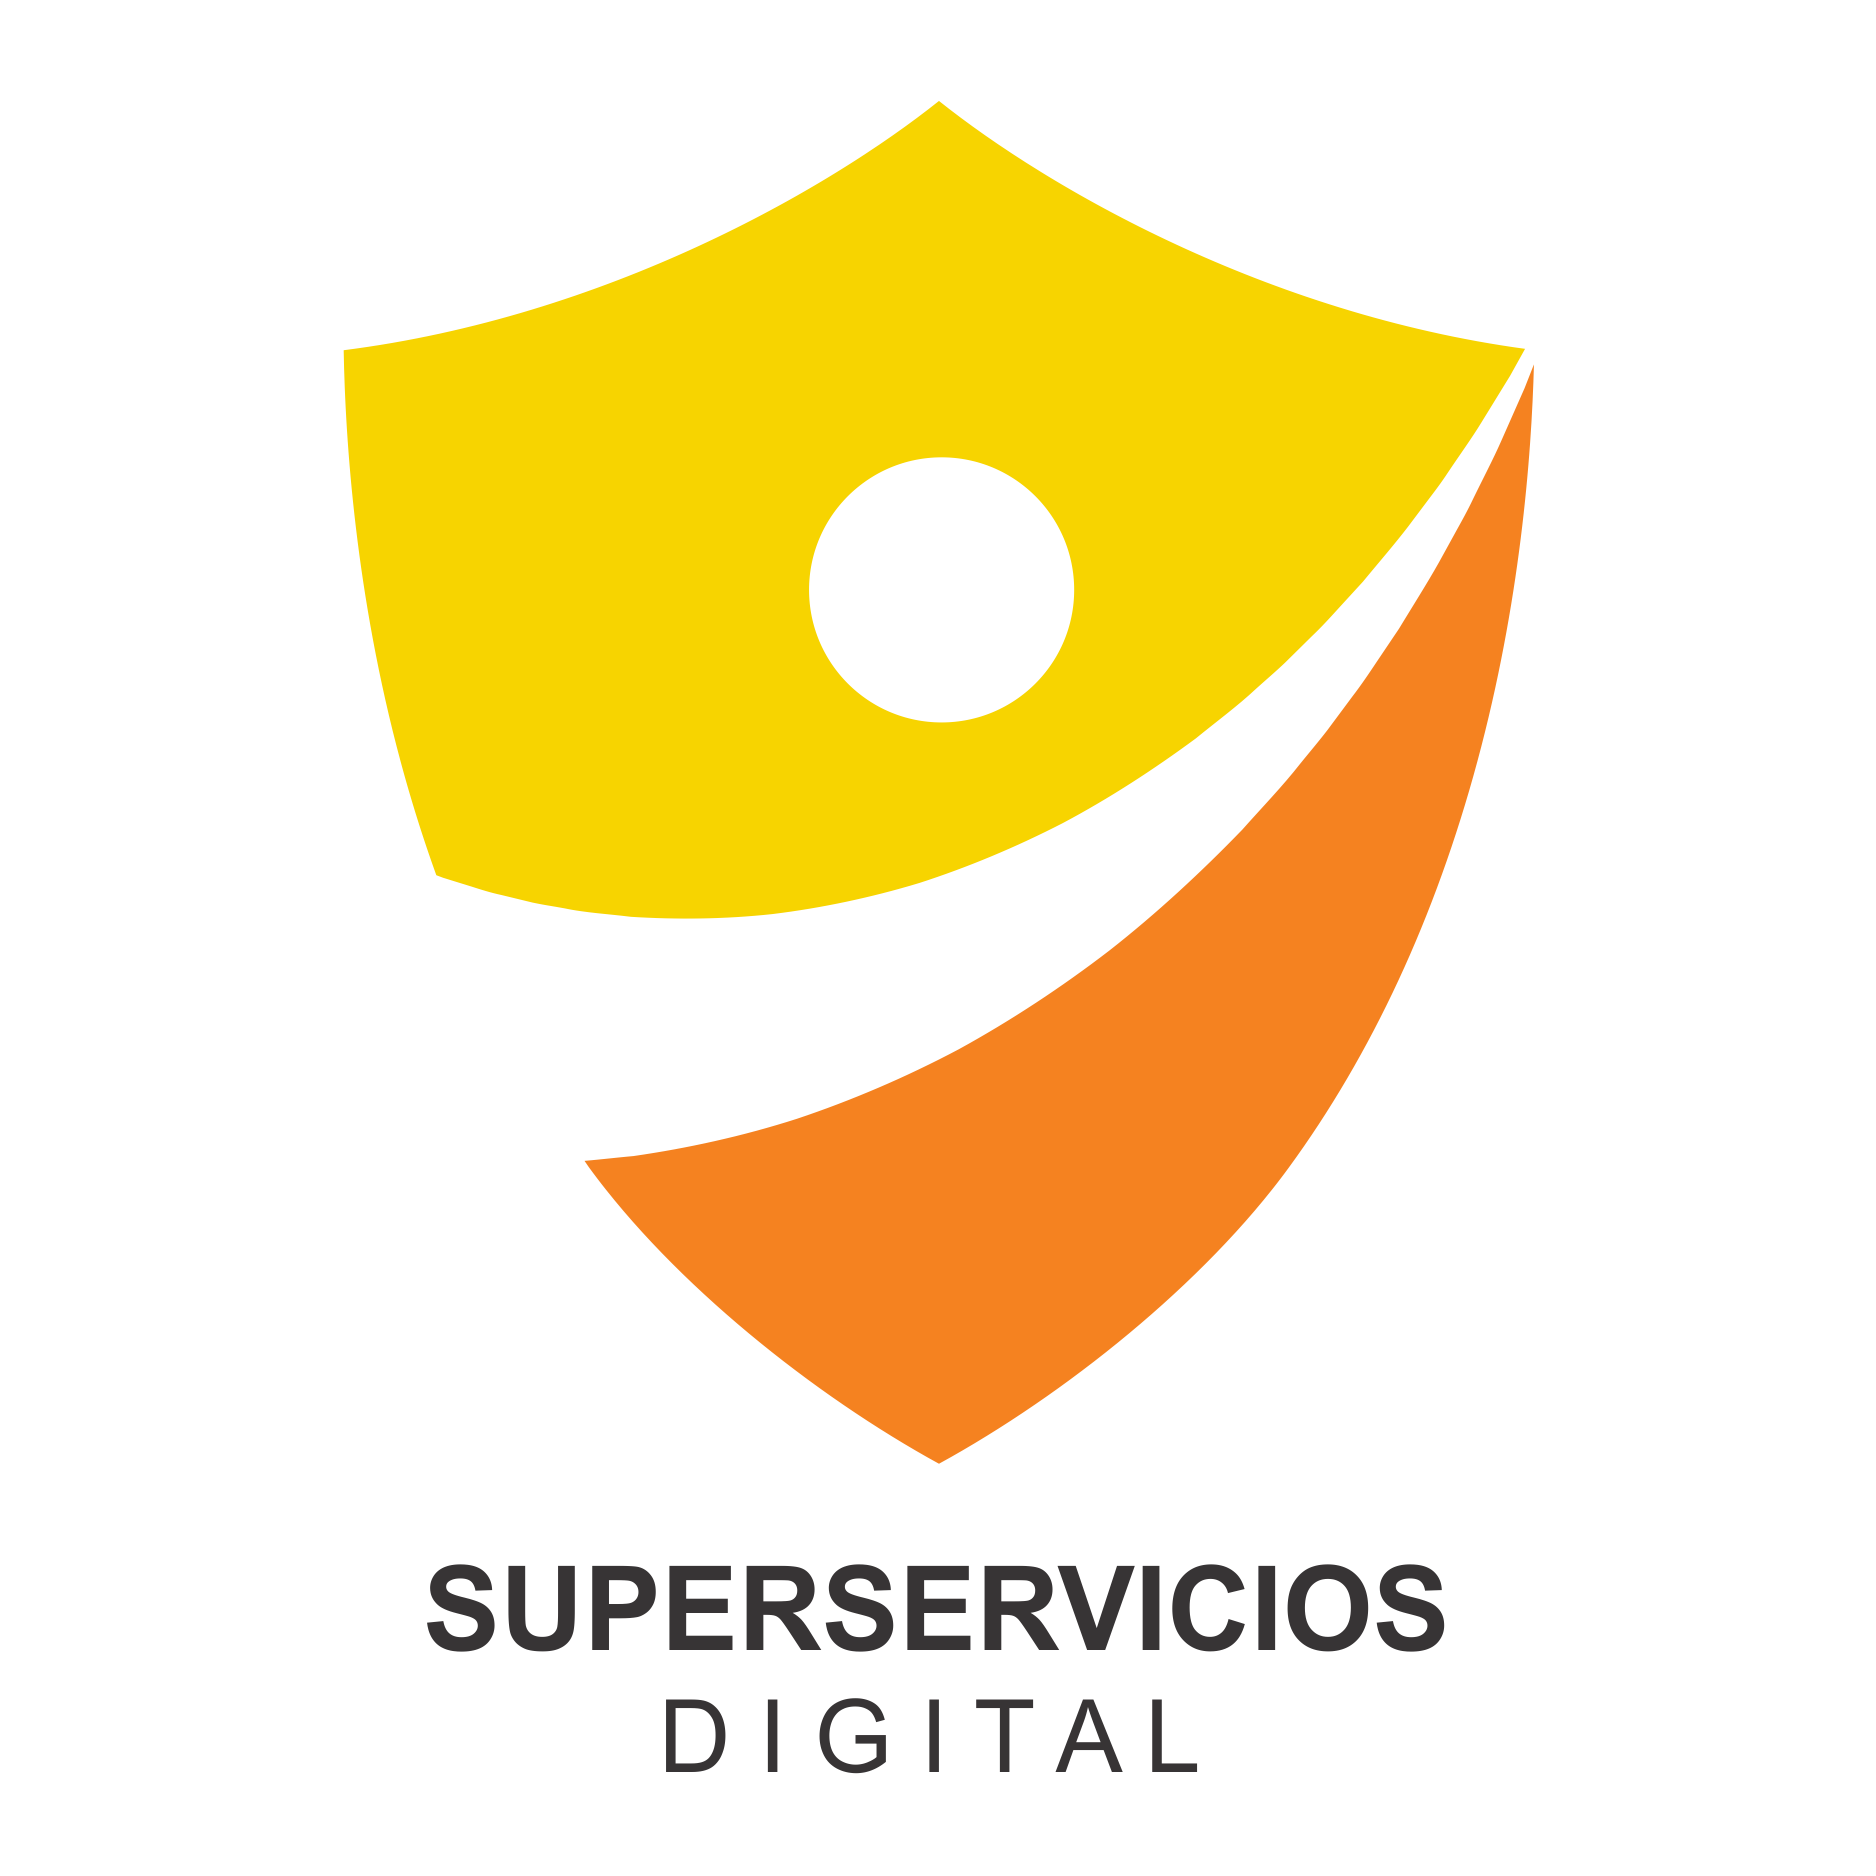 Superservicios Digital 2.0